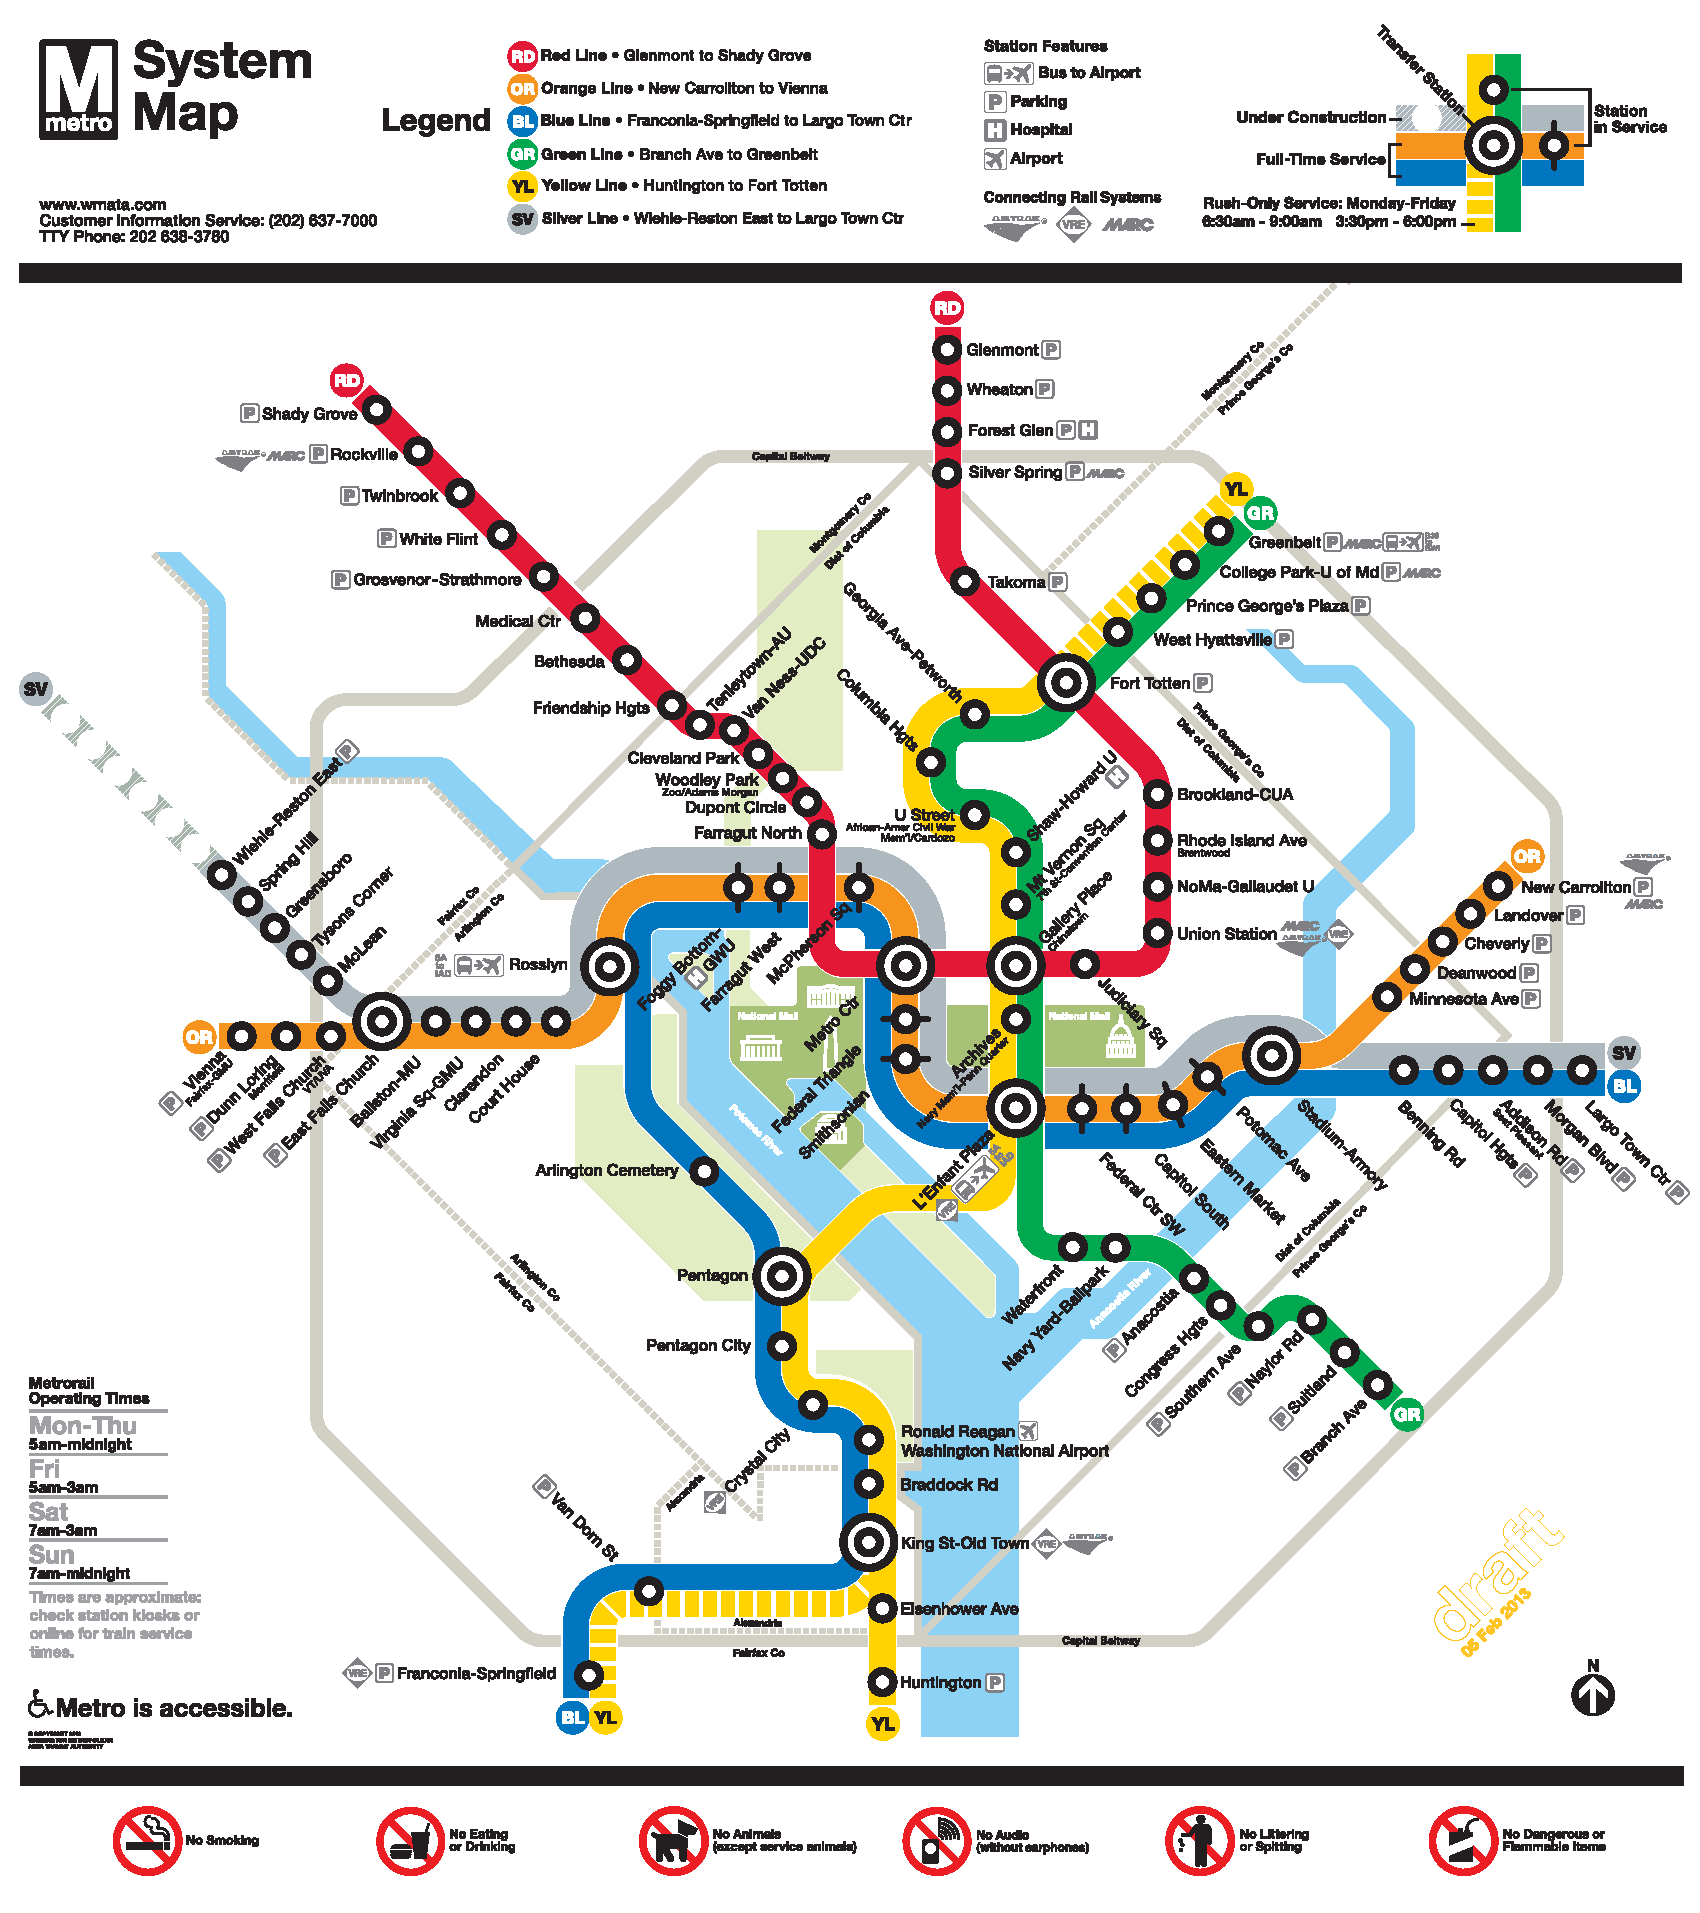 Metro Map Silver Line Do You Know When The Silver Line Is Scheduled To Open? | WAMU Metro Map Silver Line